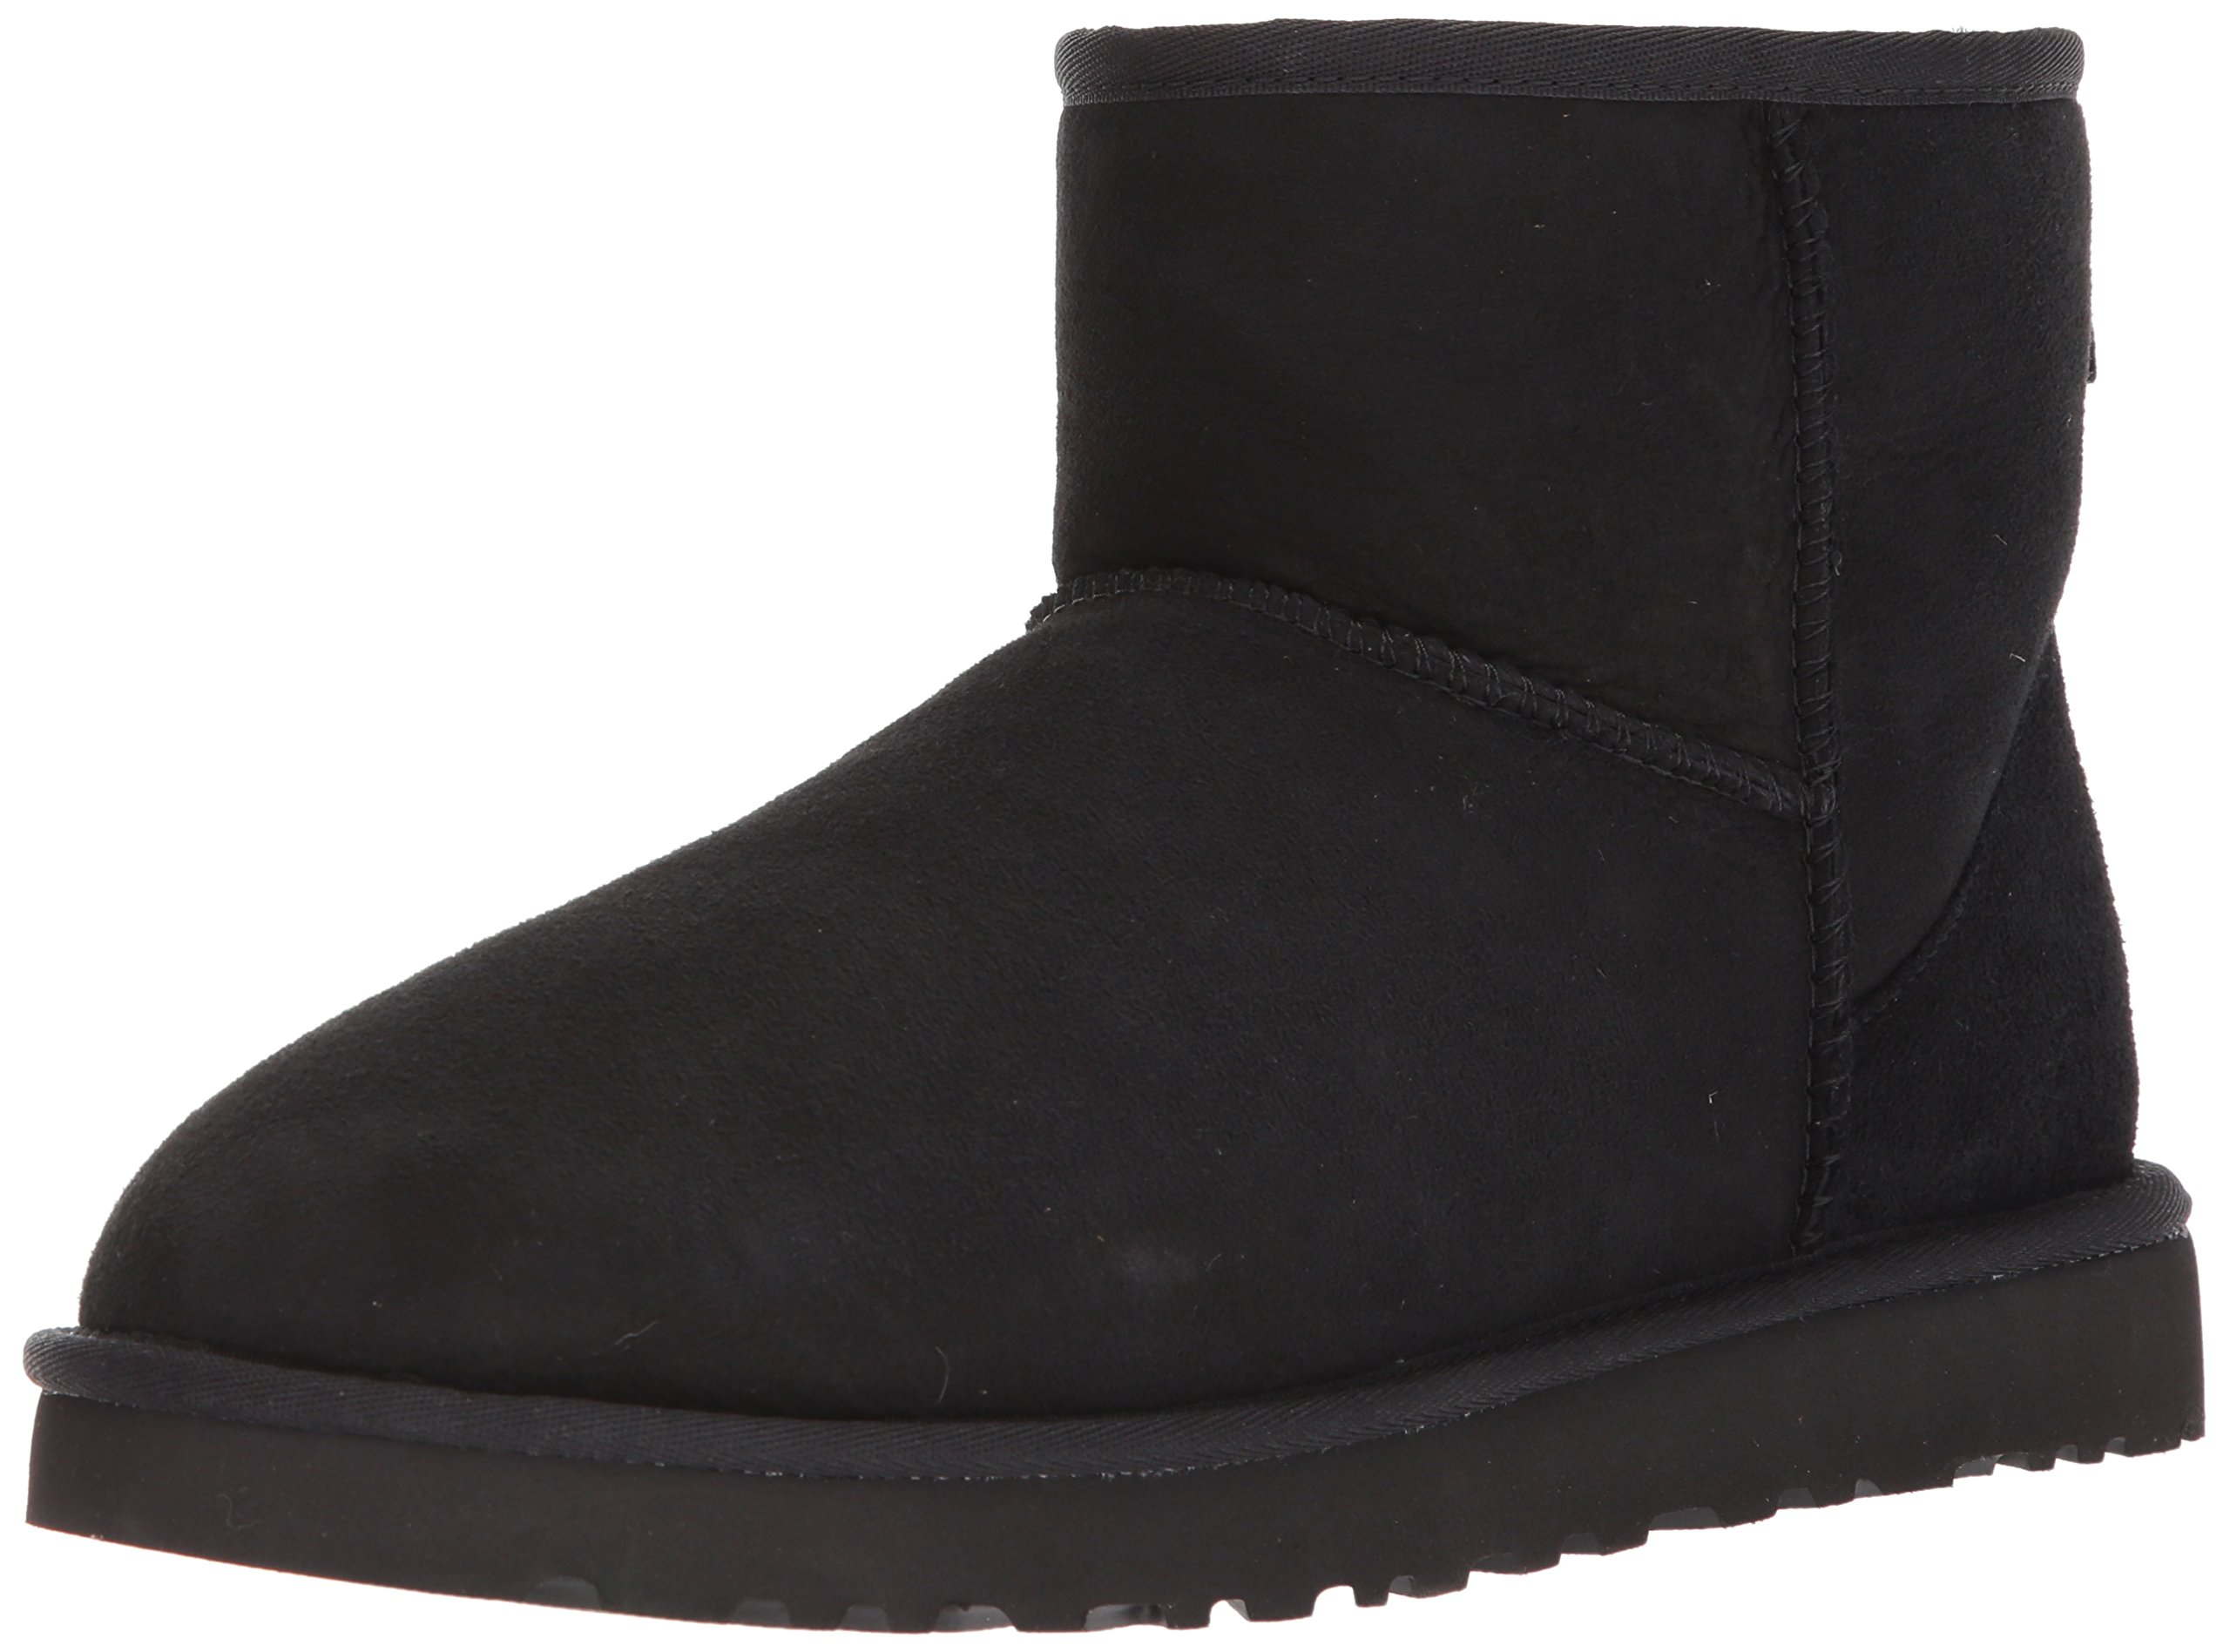 Ugg Men's Classic Mini Winter Boot, Black, 7 US/7 M US